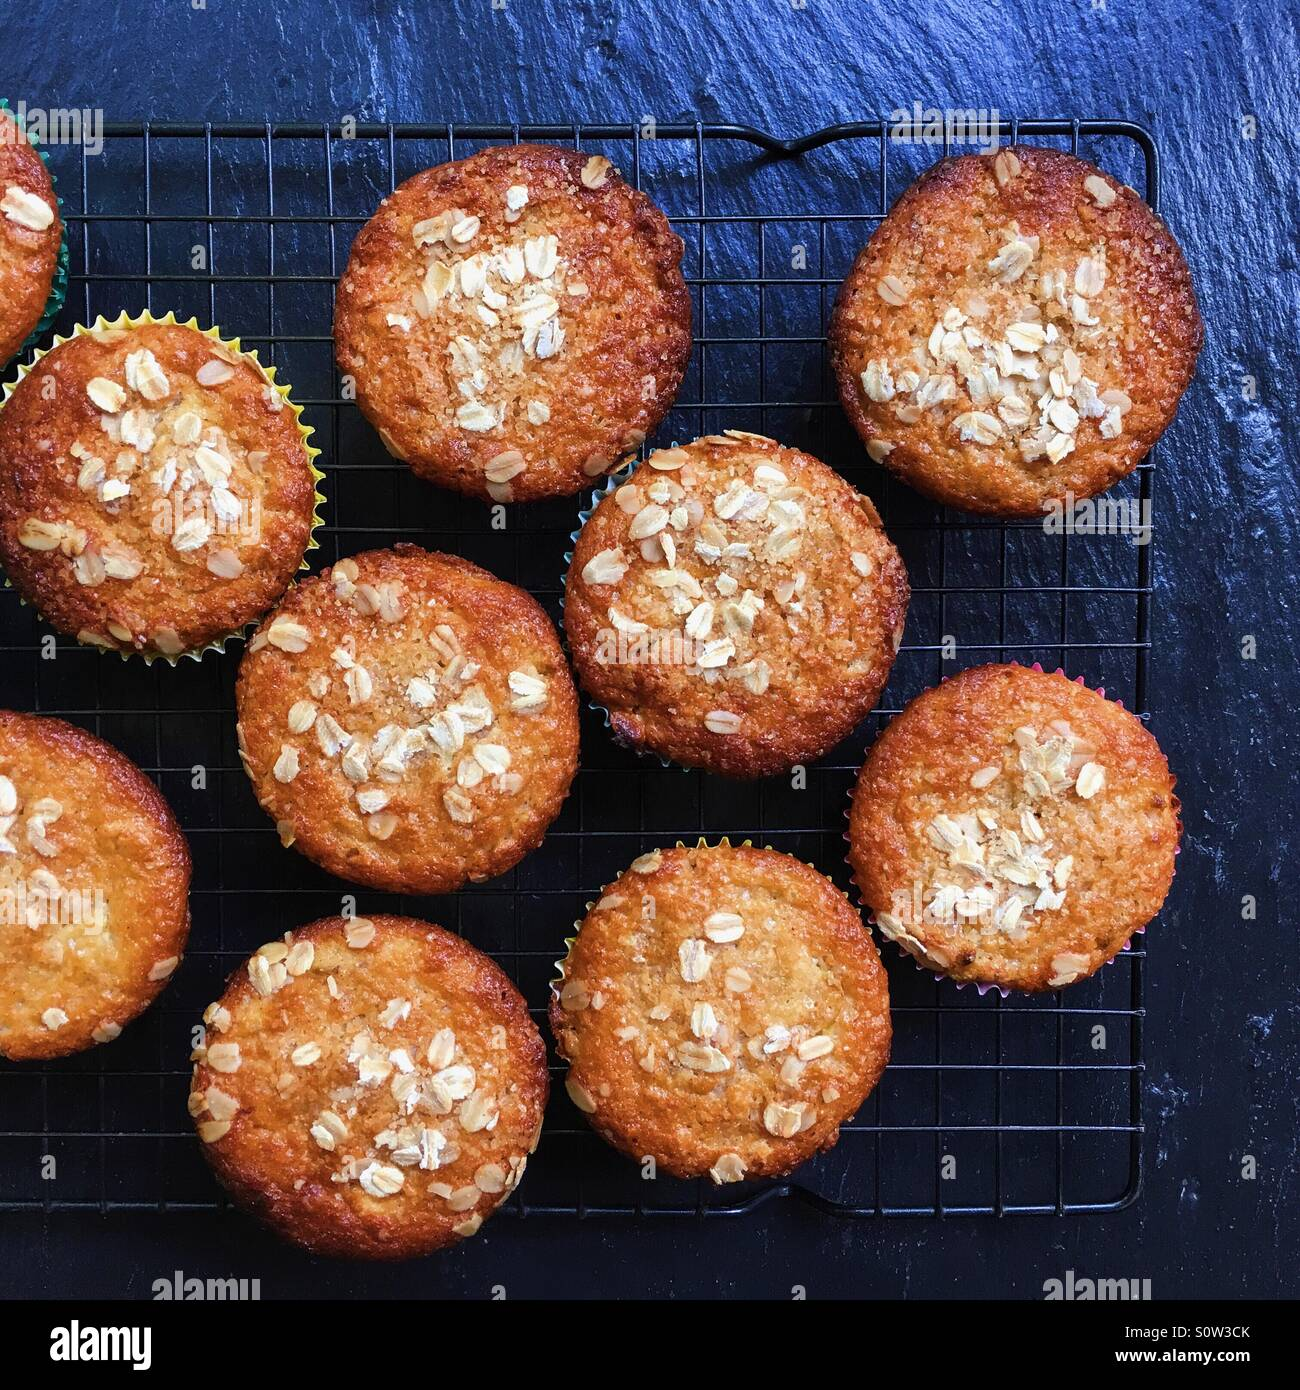 Muffins - Stock Image